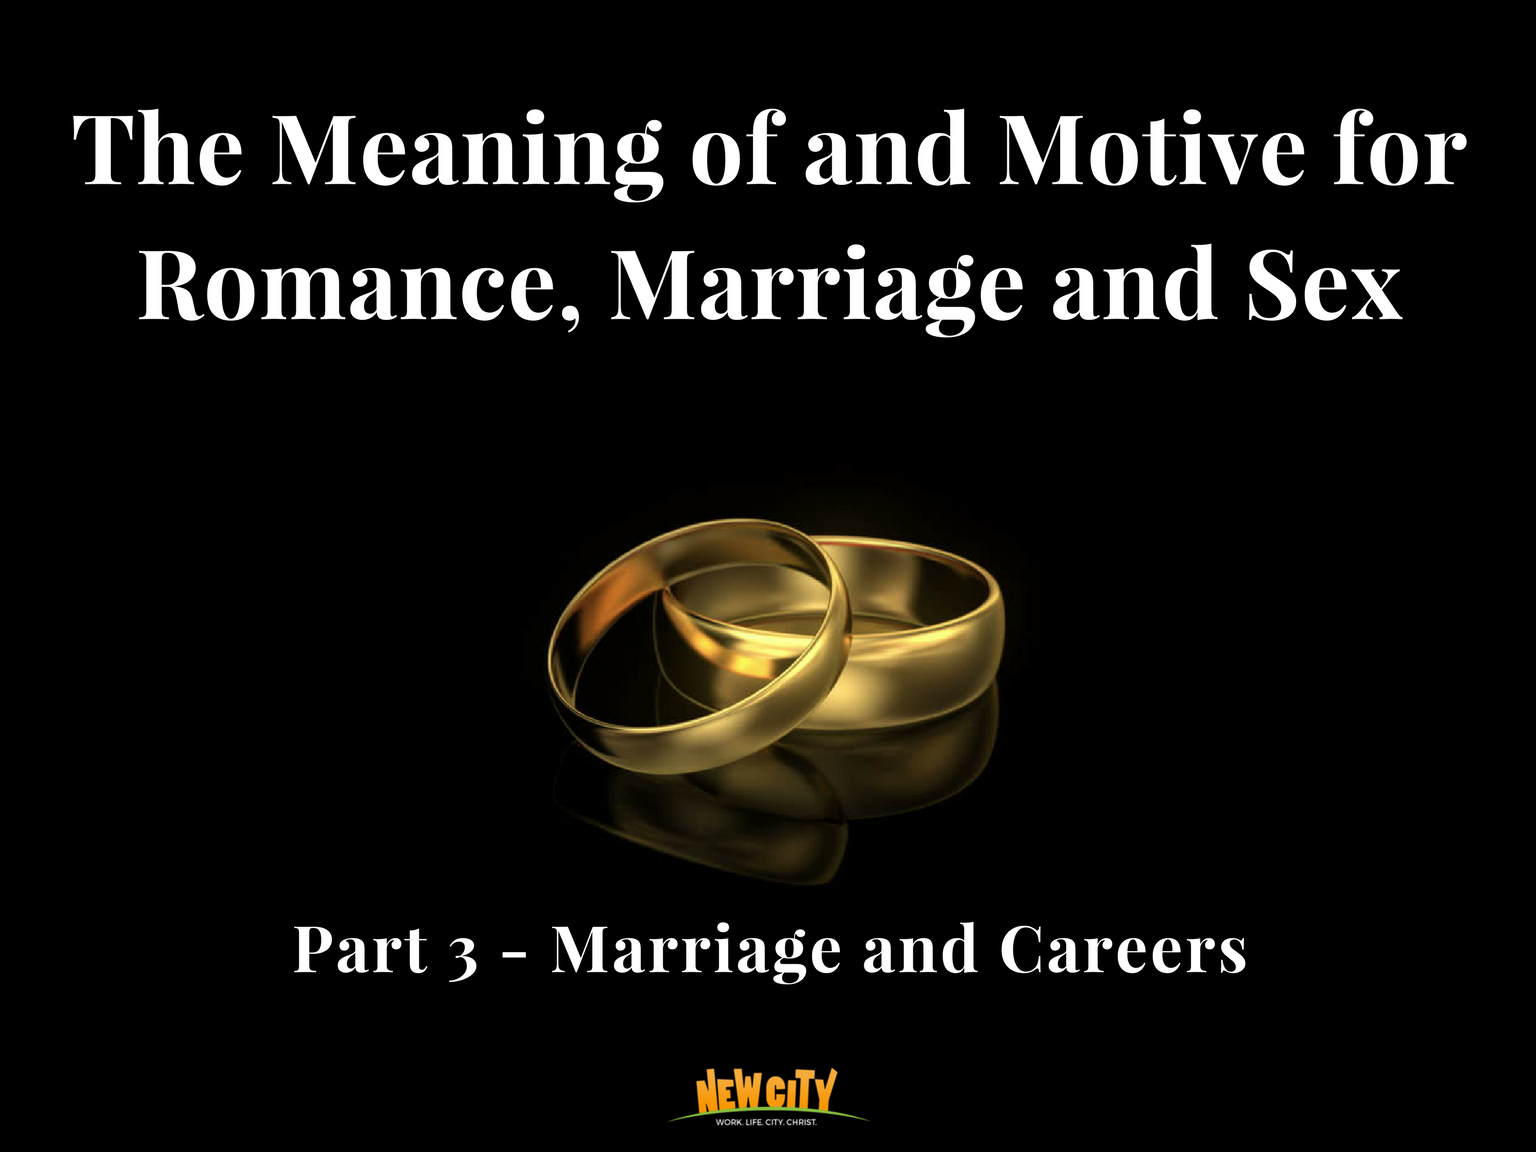 Marriage and Careers  Image